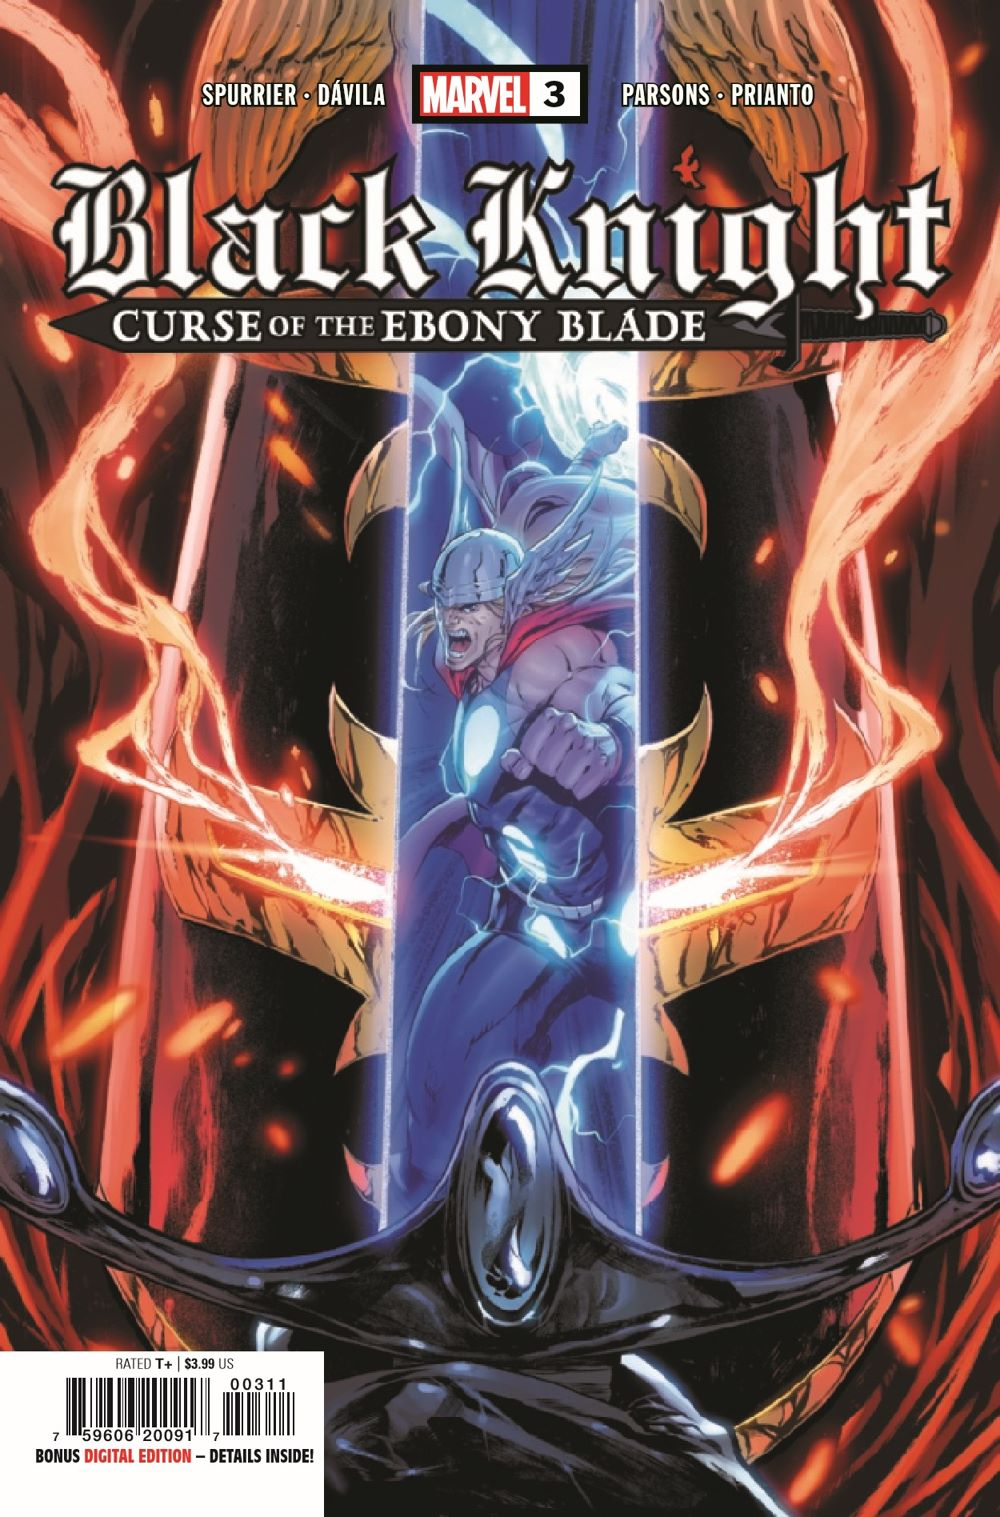 BLKKNGHTCURSE2021003_Preview-1 ComicList Previews: BLACK KNIGHT CURSE OF THE EBONY BLADE #3 (OF 5)